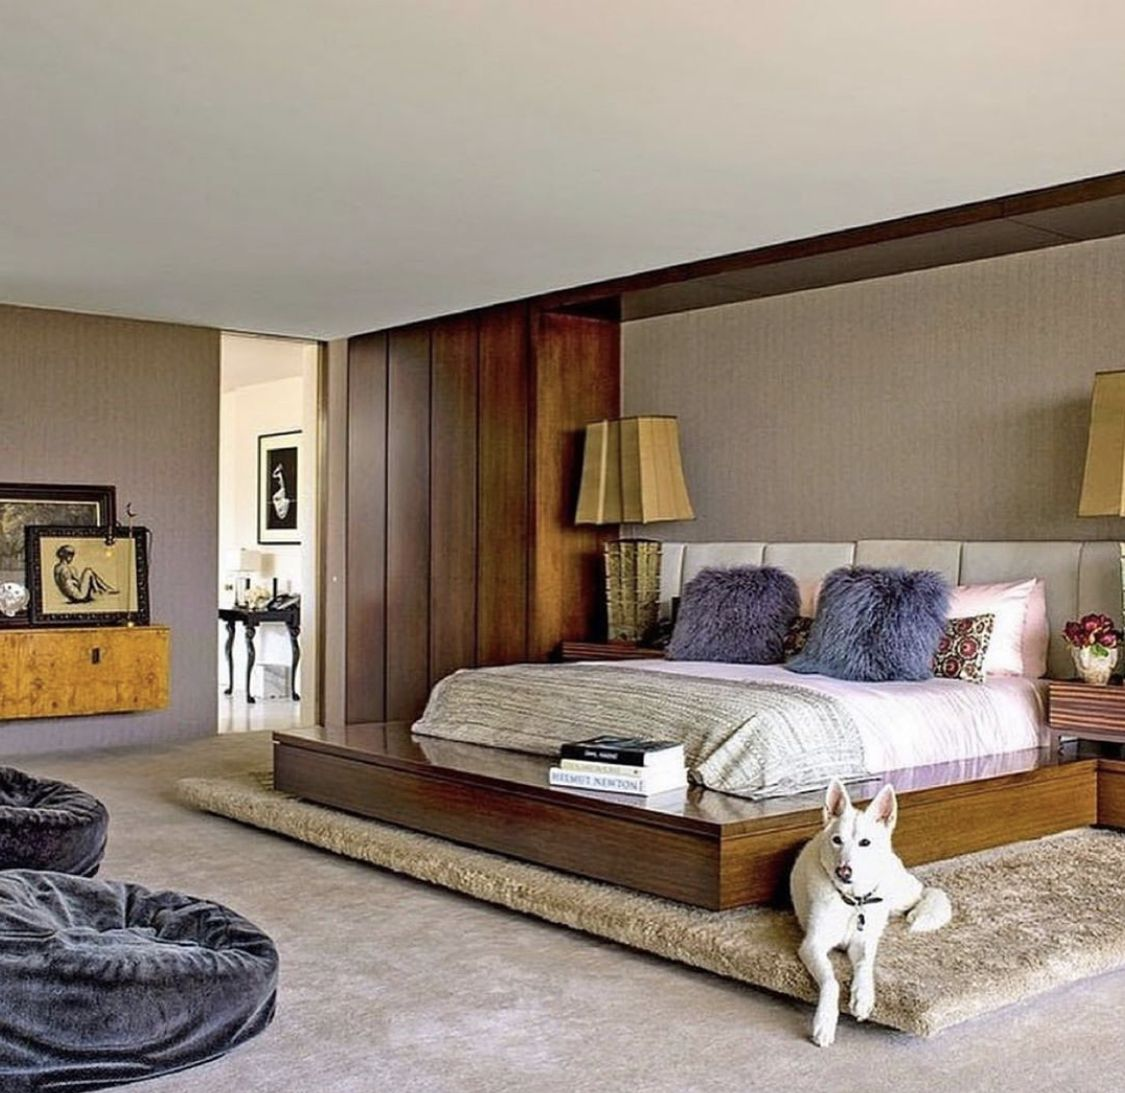 Pin by rlevyp on Master Bedroom in 2020 Home, Home decor